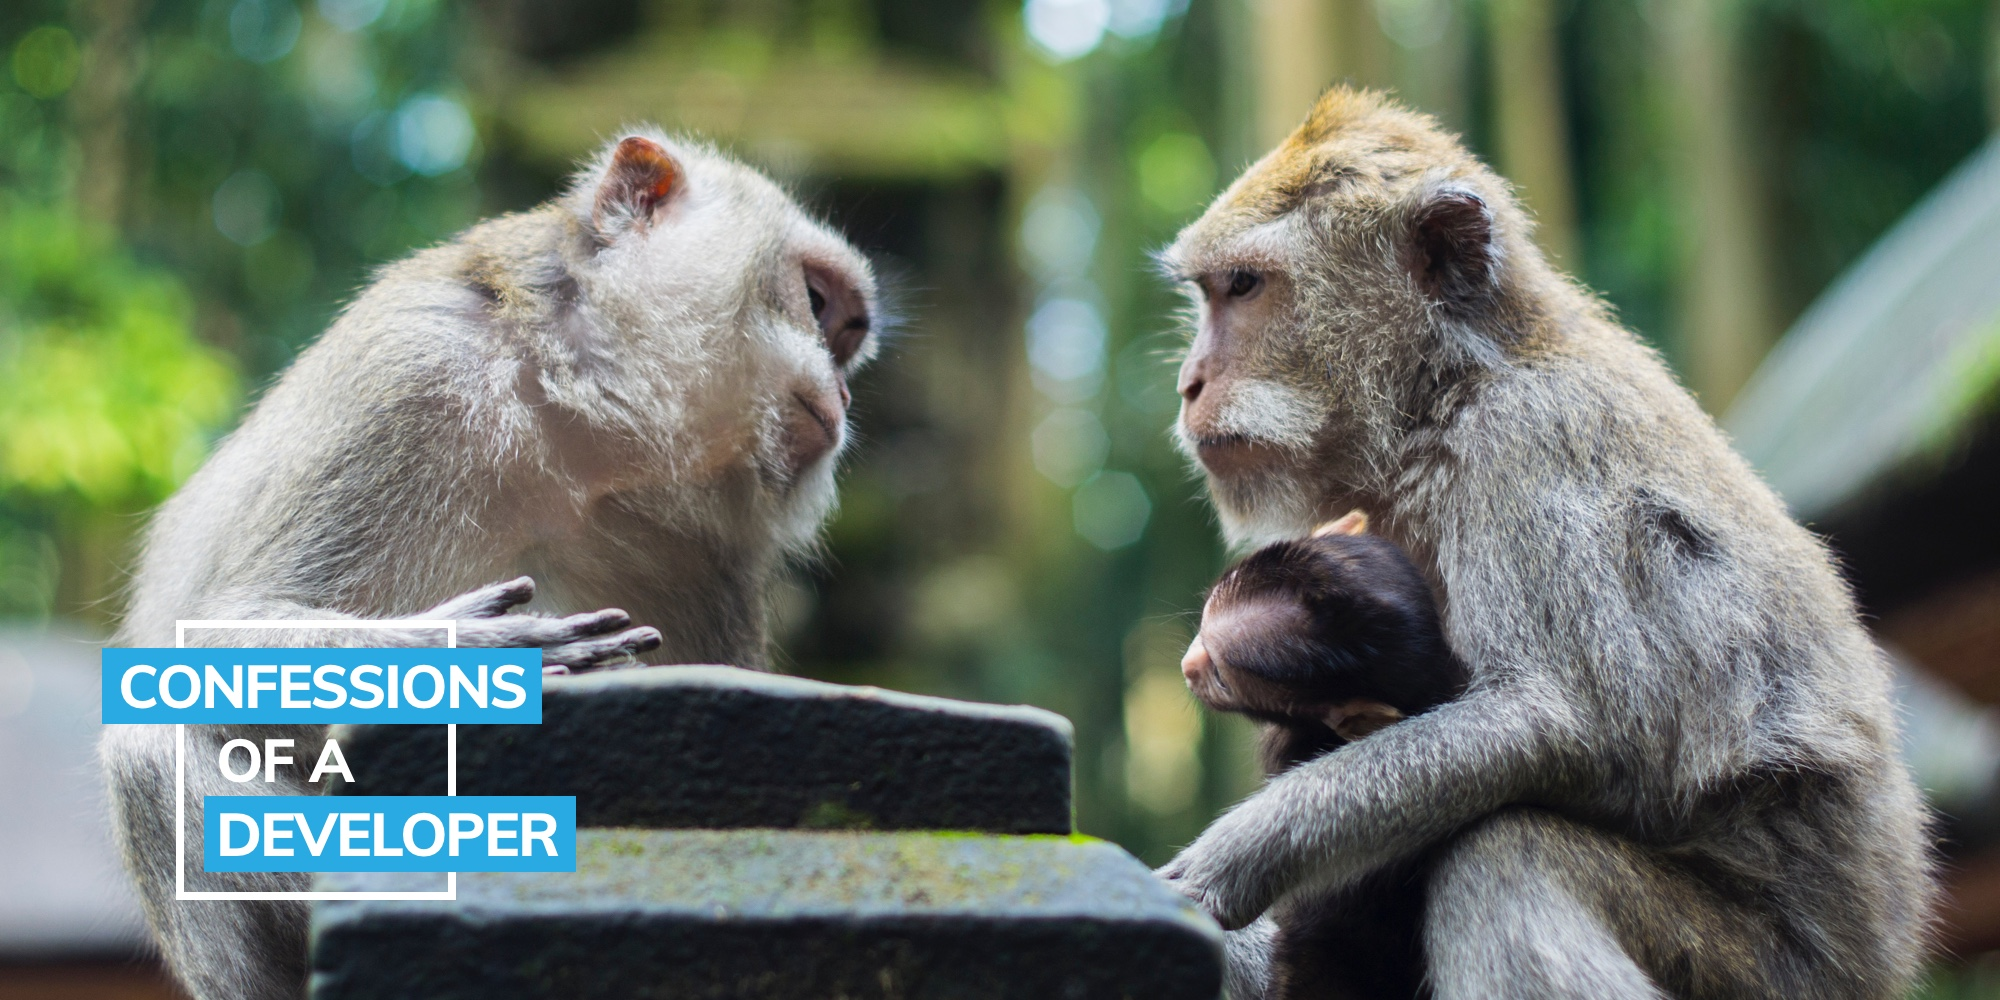 Blog image with 2 monkeys communicating with each other